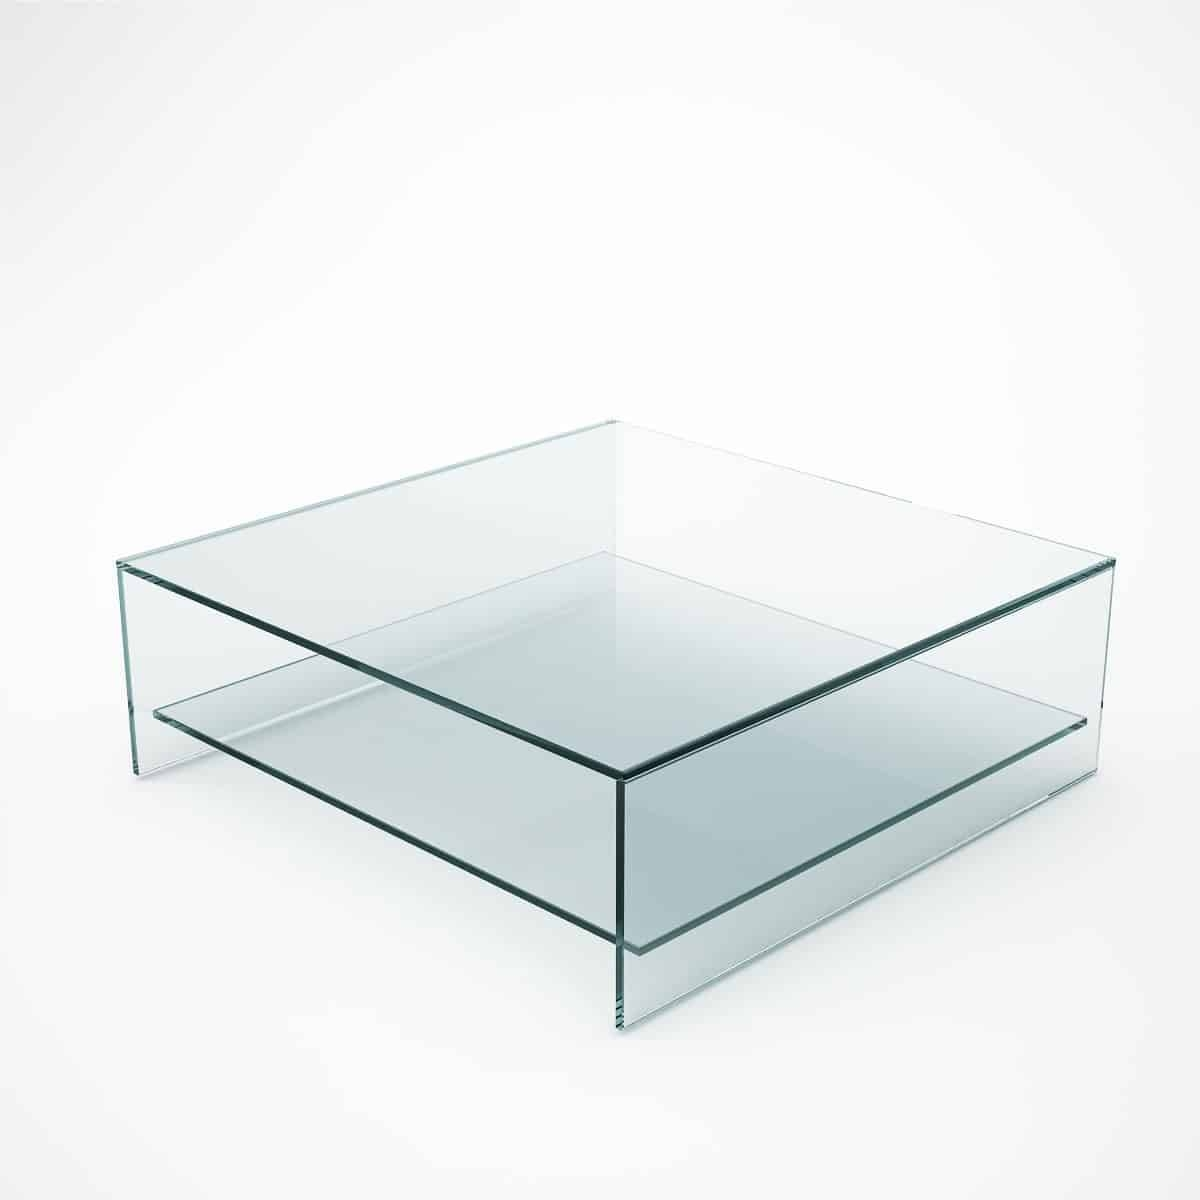 Judd - Square Glass Coffee Table With Shelf - Klarity - Glass regarding Square Glass Coffee Table (Image 6 of 15)